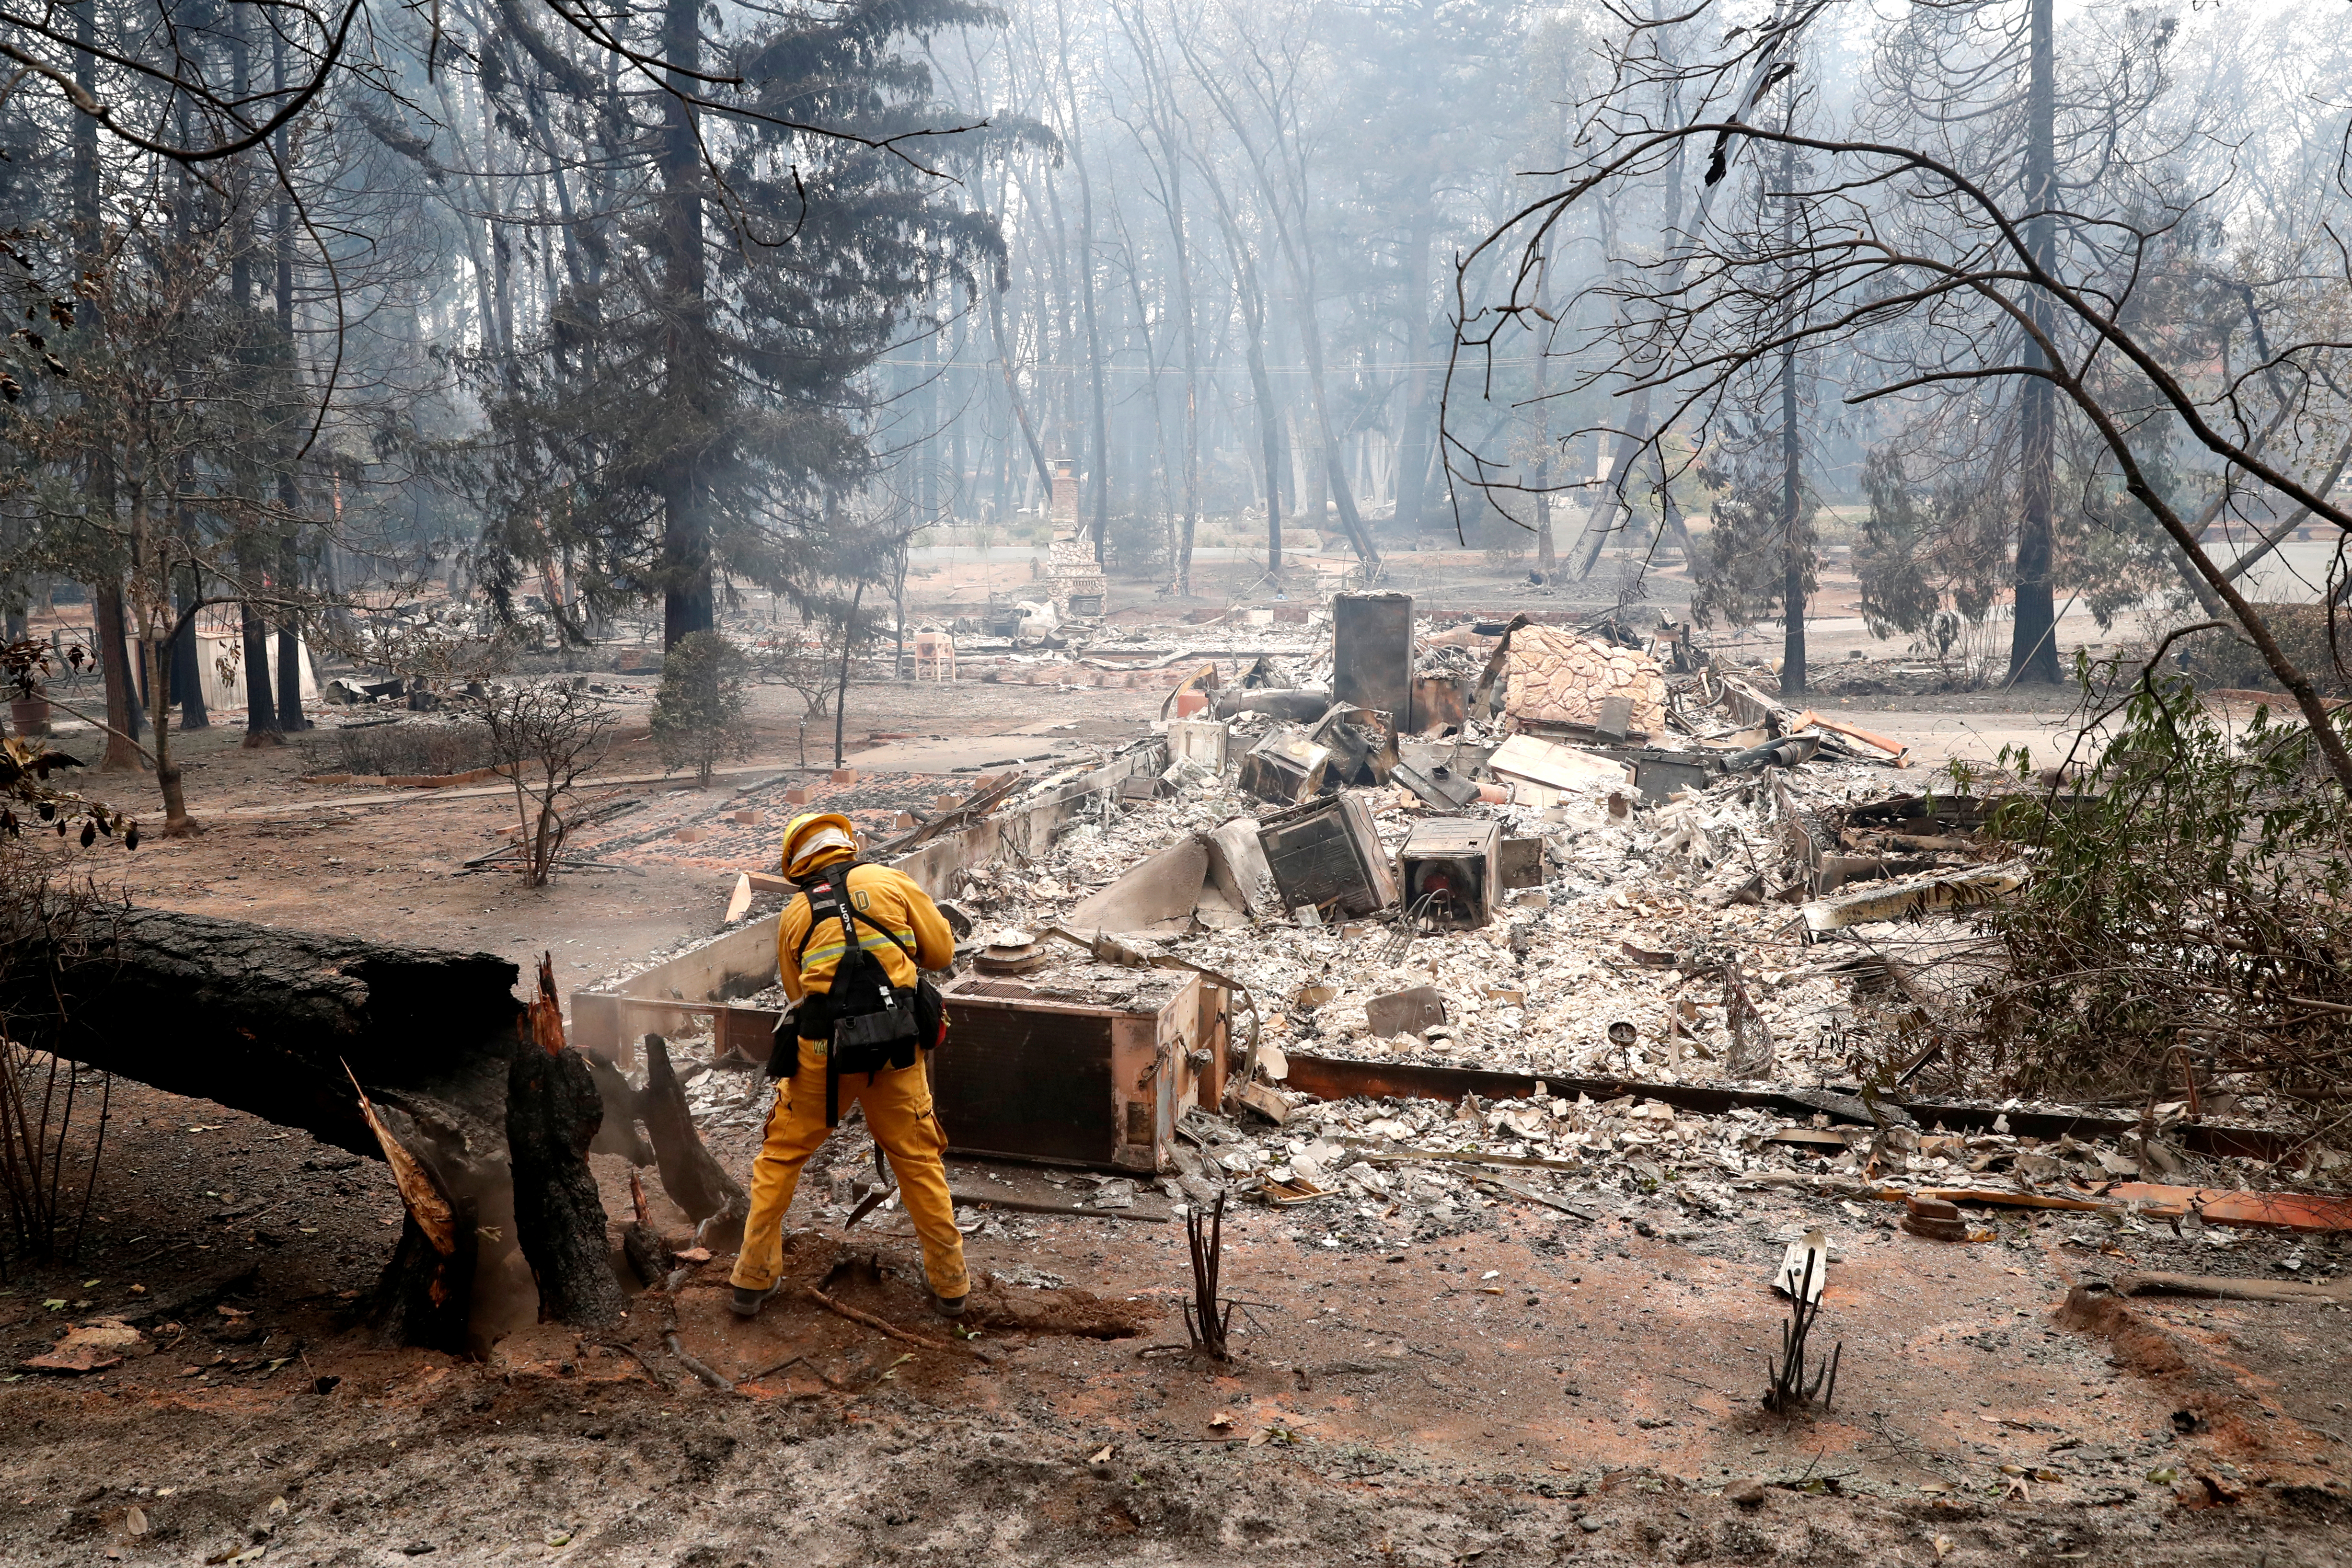 A firefighter extinguishes a hot spot in a neighbourhood destroyed by the Camp Fire in Paradise, California, U.S., November 13, 2018. REUTERS/Terray Sylvester